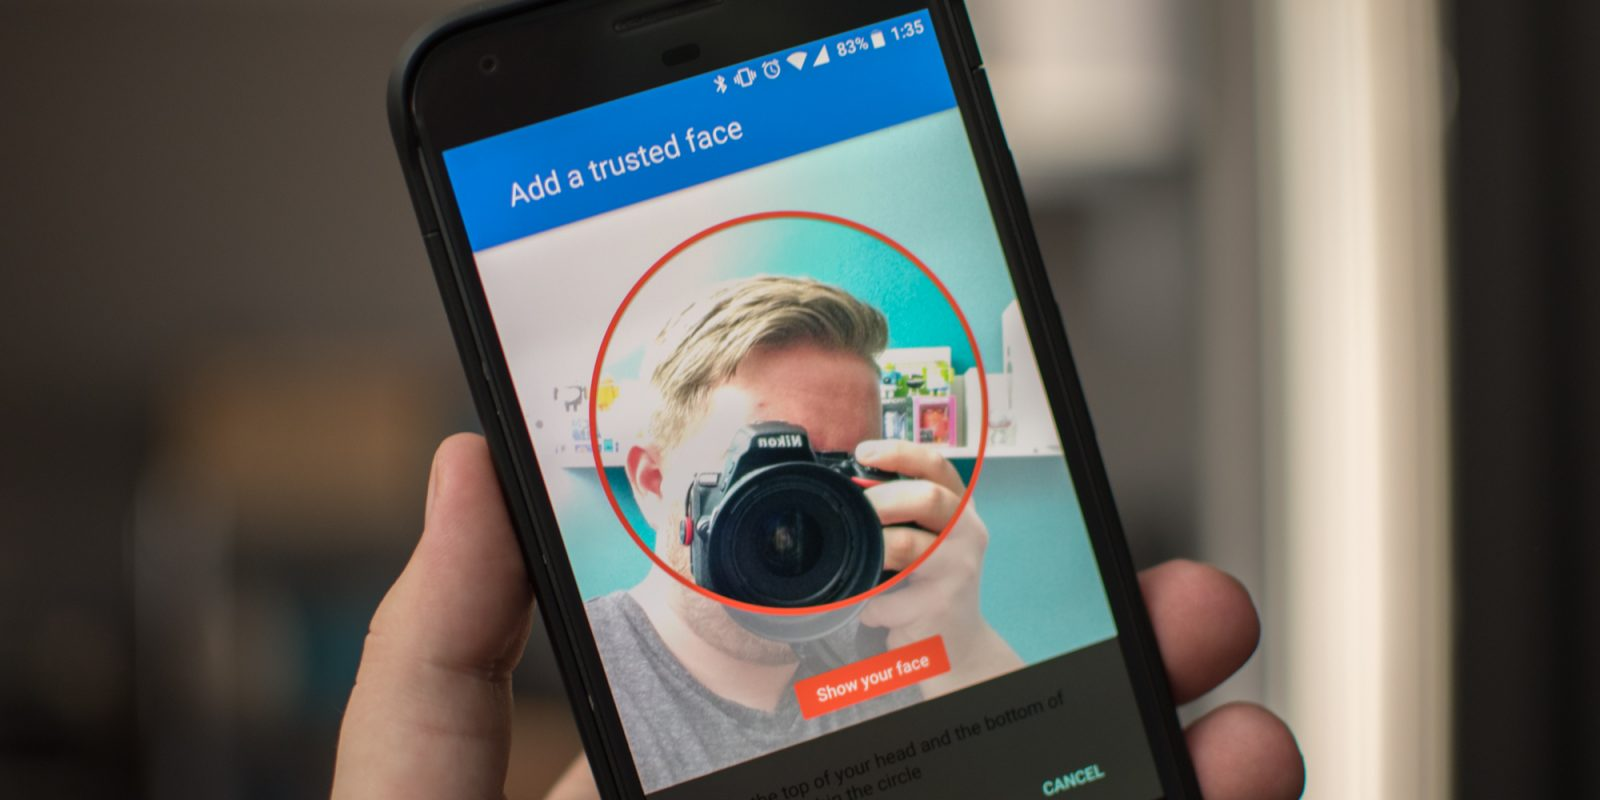 How to unlock your Android device with camera-based face recognition